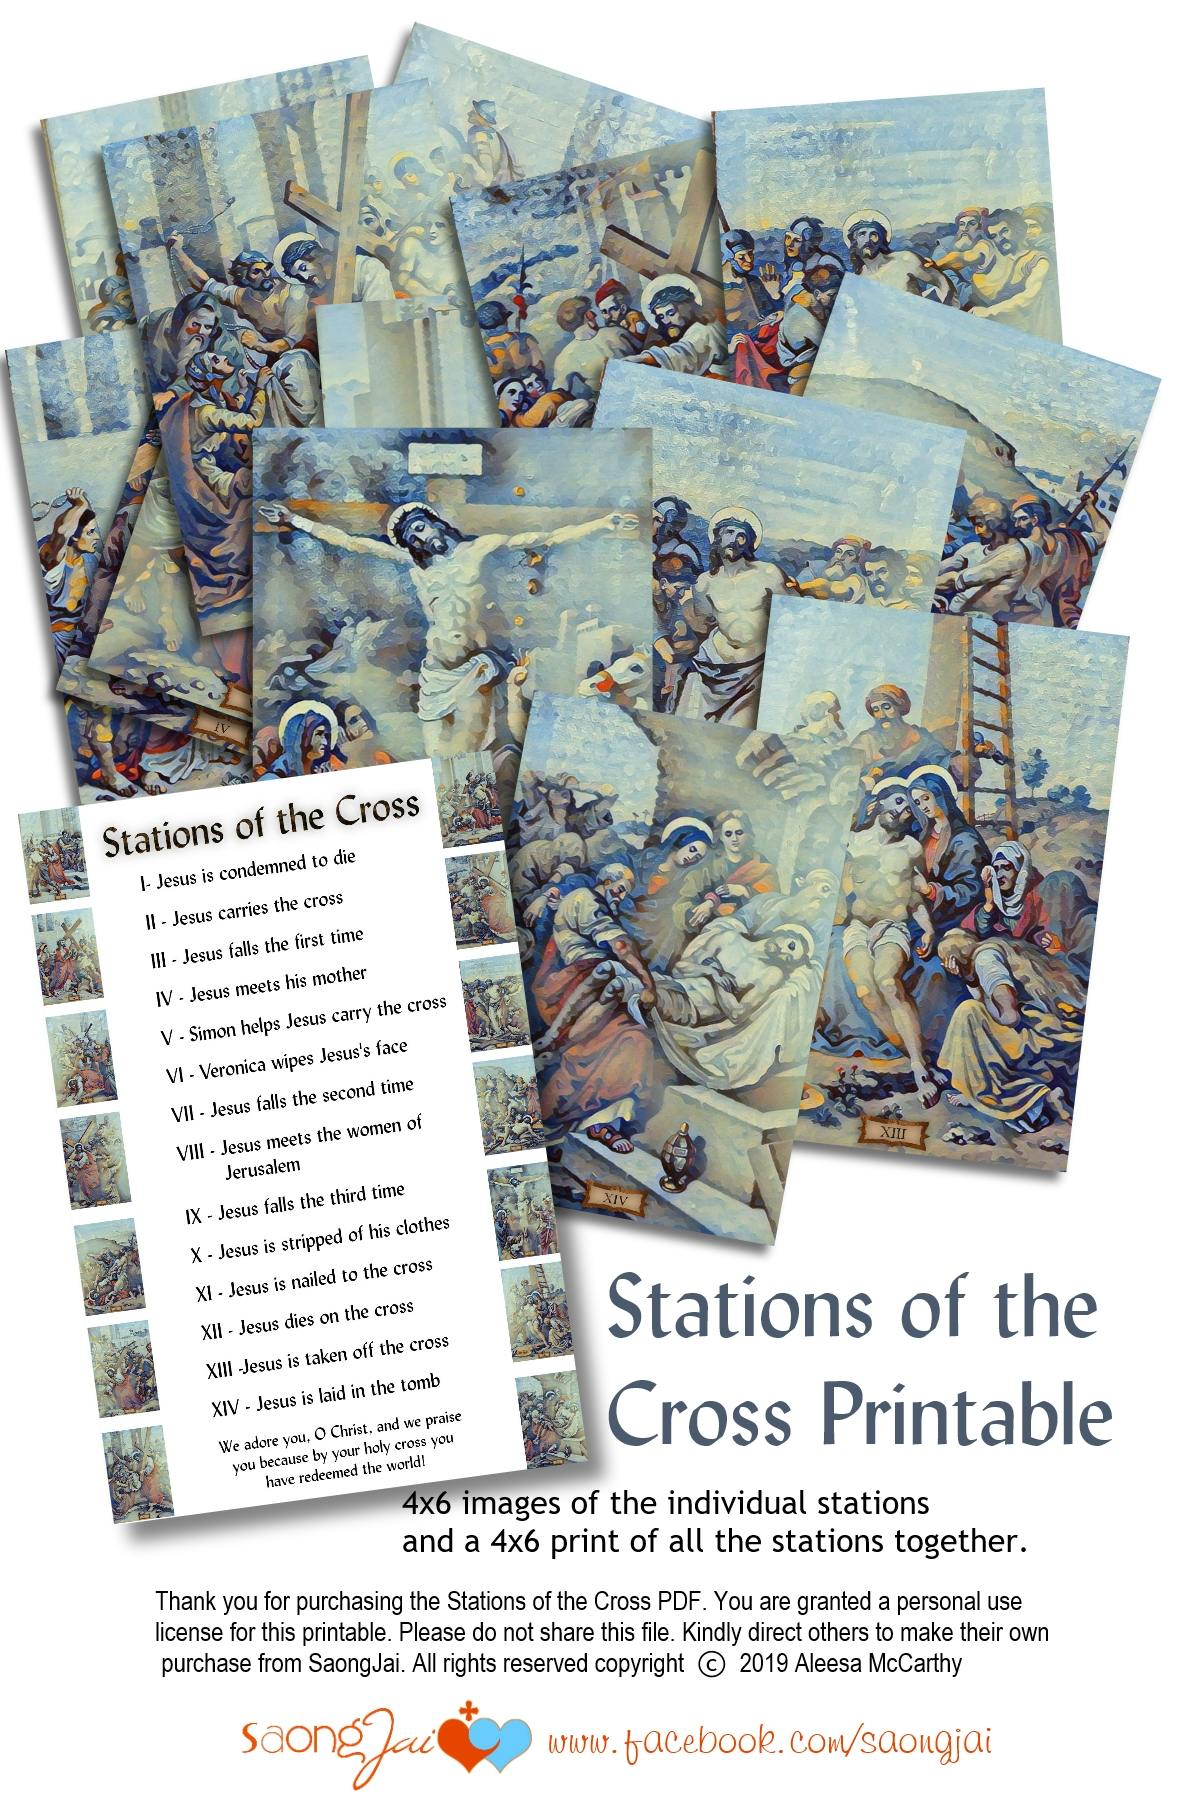 image regarding Stations of the Cross Prayers Printable referred to as Printable 4x6 Stations of the Cross PDF